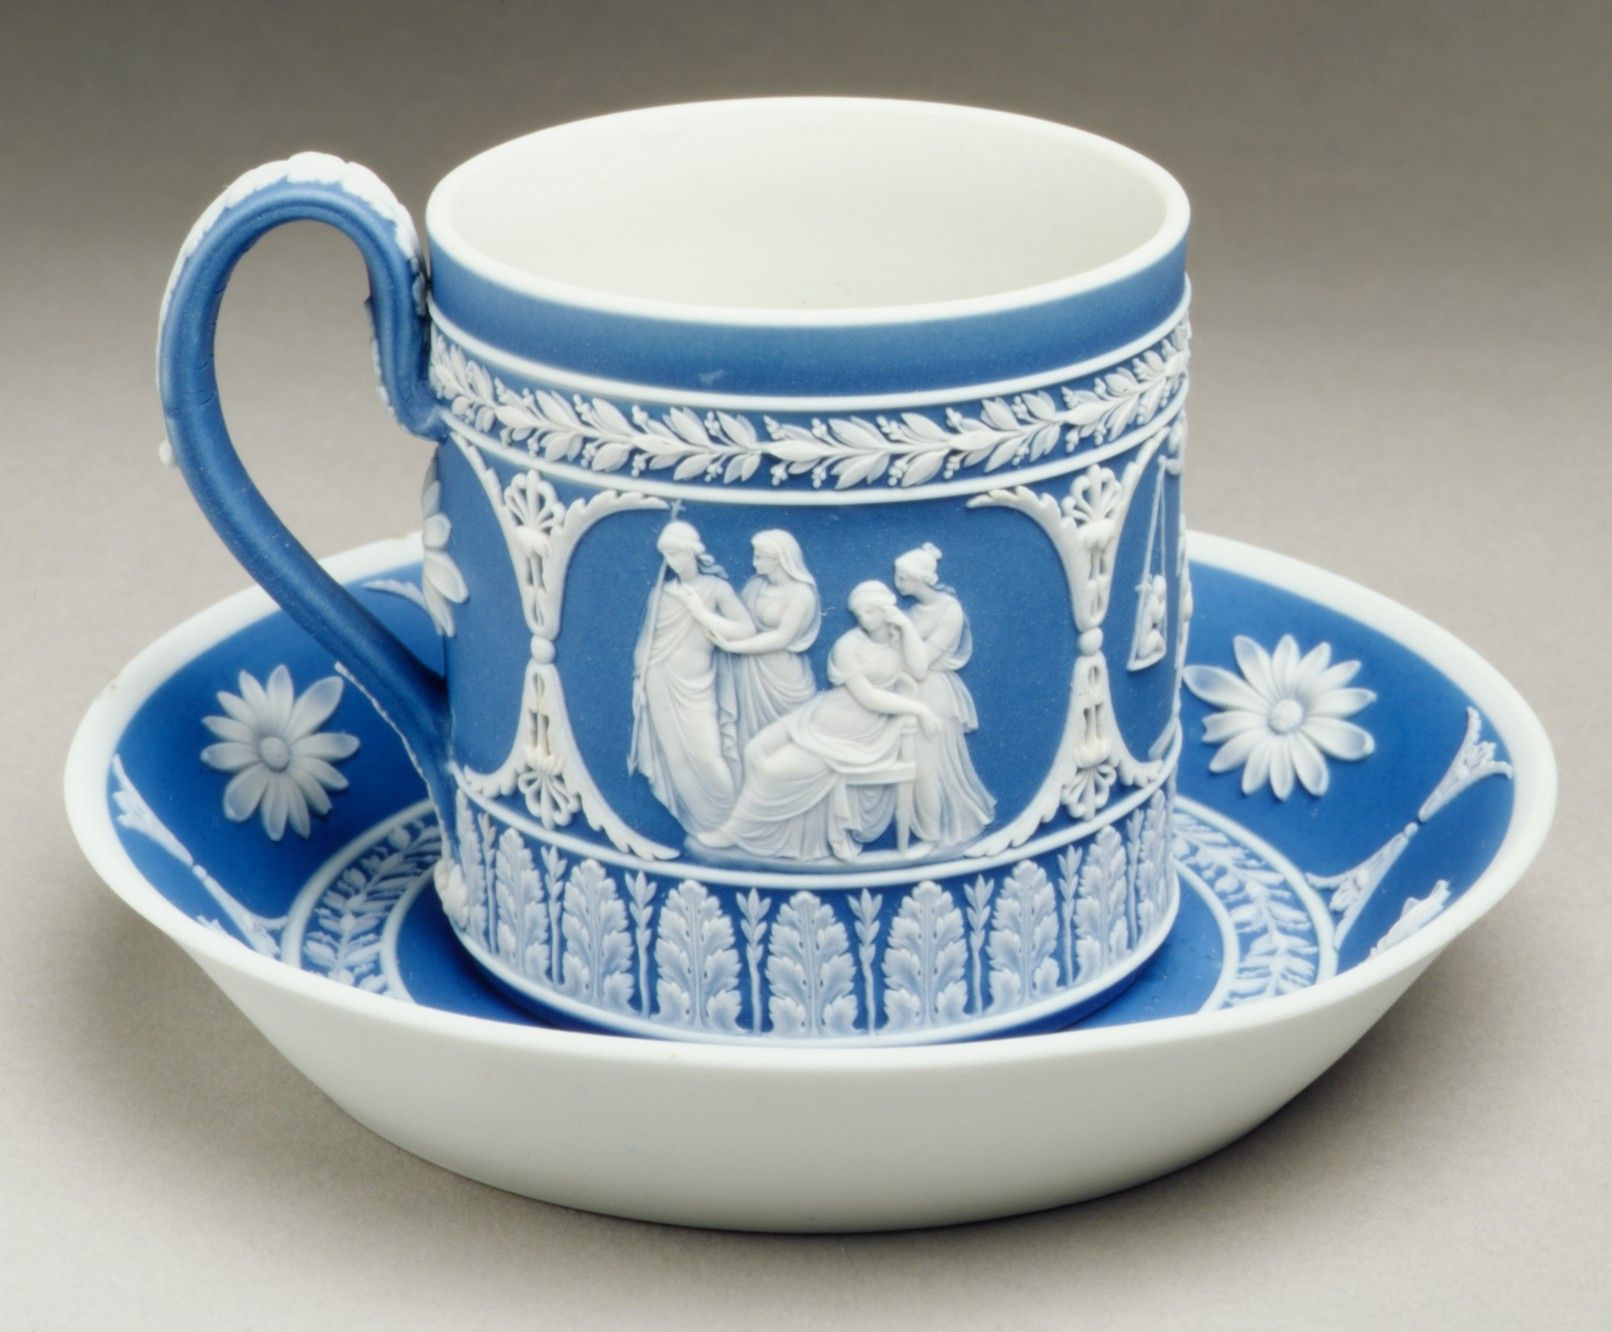 wedgwood jasperware markings dating Dating wedgwood dinnerware - men looking for a man - women looking for a man is the number one destination for online dating with more relationships than any other dating or personals site if you are a middle-aged man looking to have a good time dating man half your age, this article is for you.